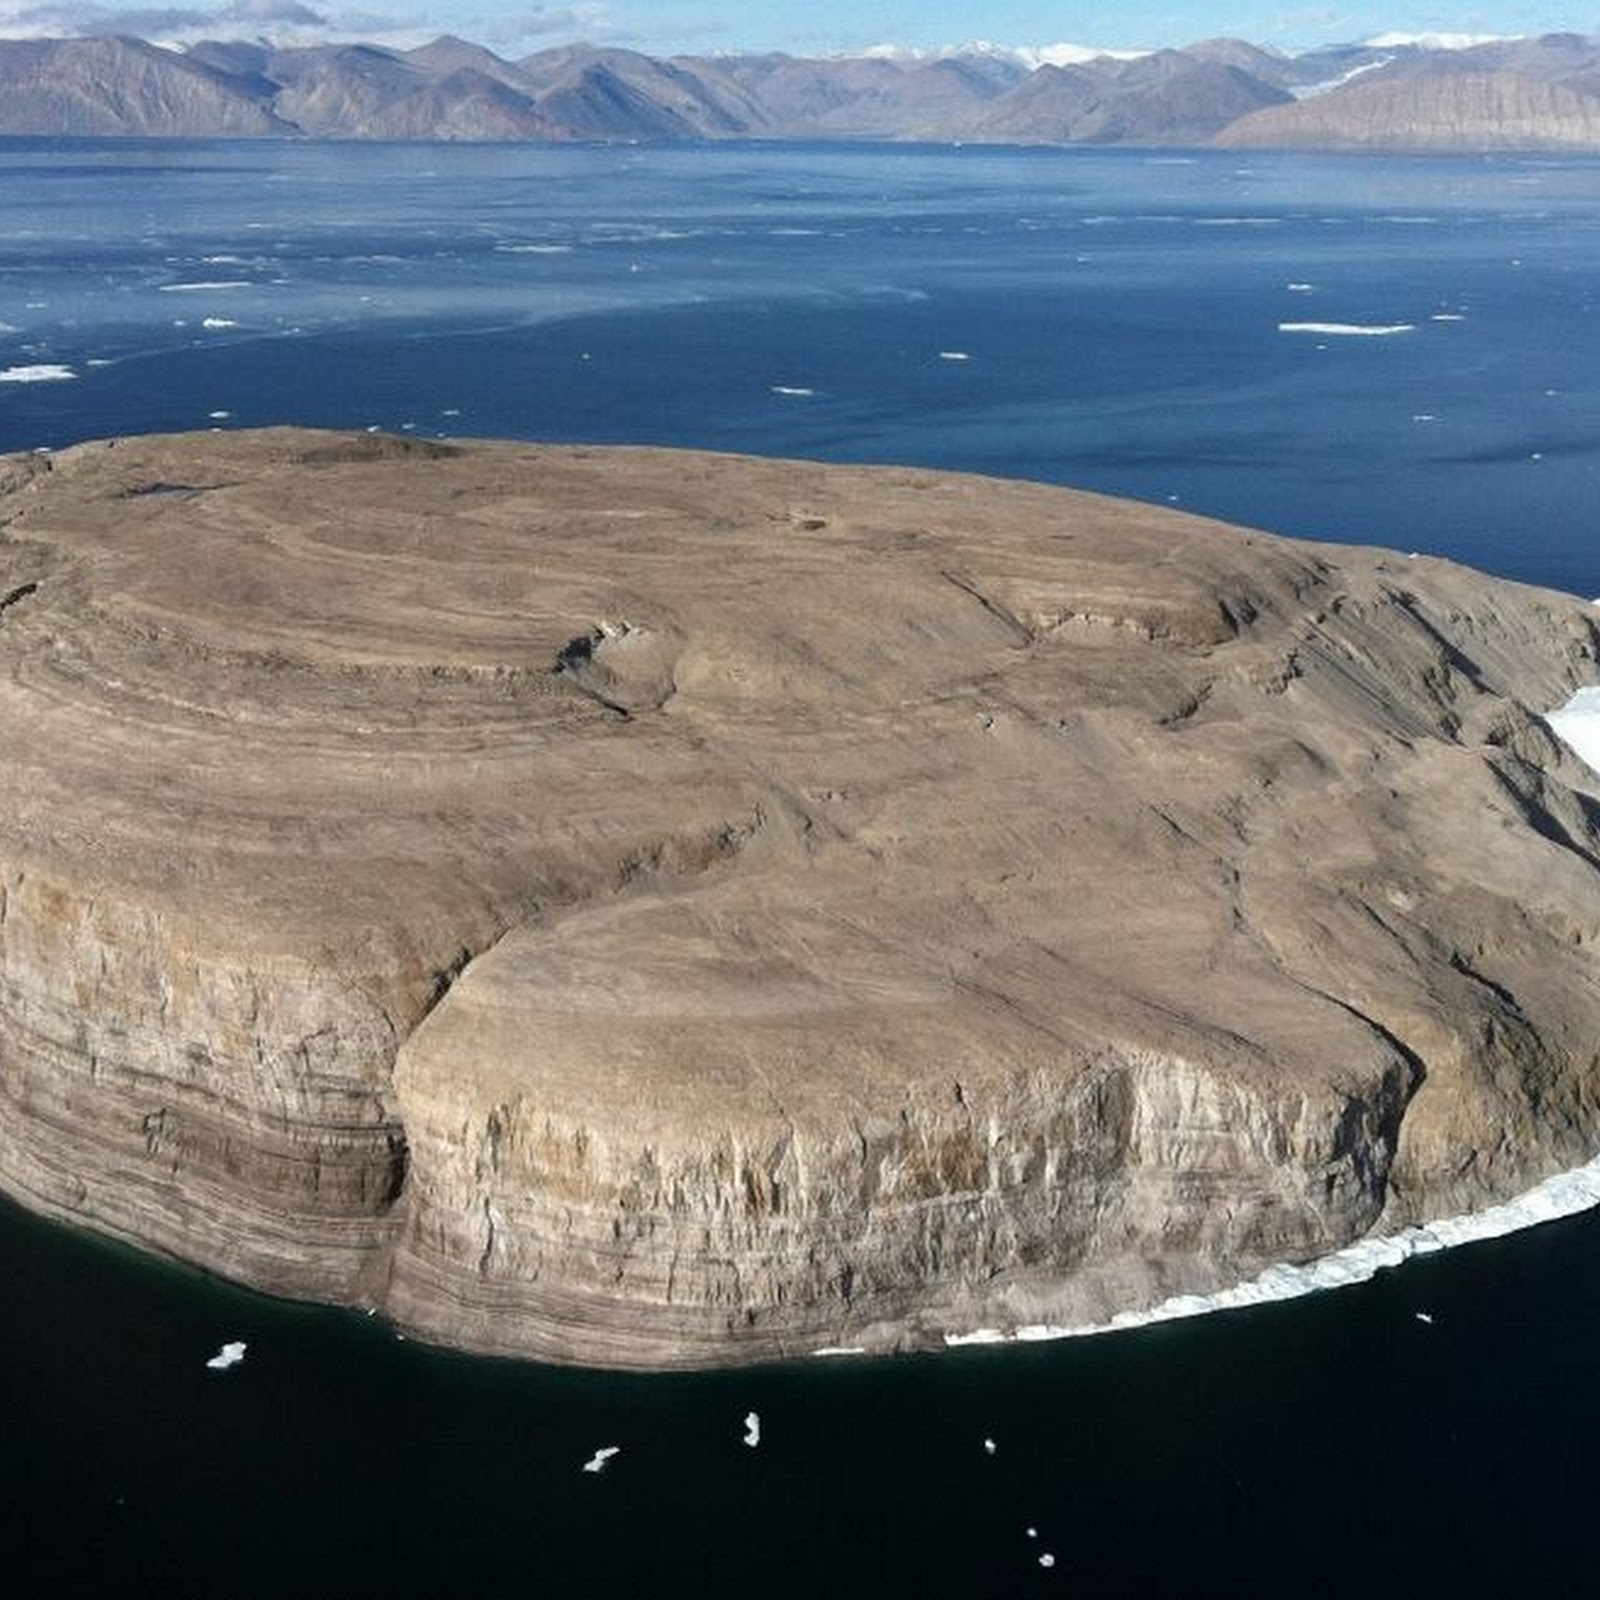 The 'Whiskey War' of Hans Island